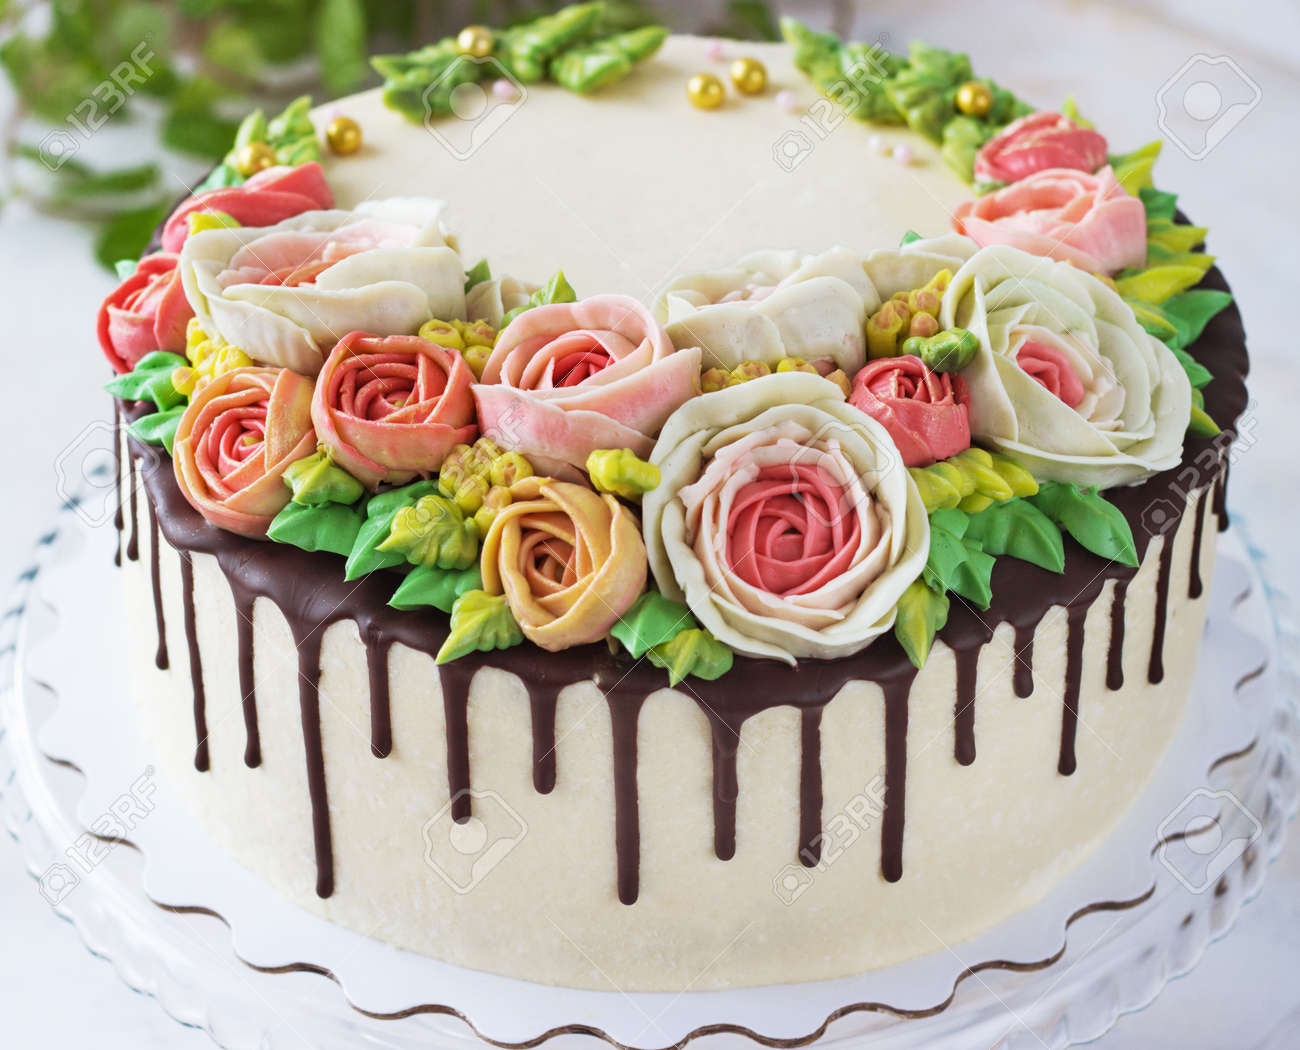 Superb Birthday Cake With Flowers Rose On White Background Stock Photo Personalised Birthday Cards Cominlily Jamesorg